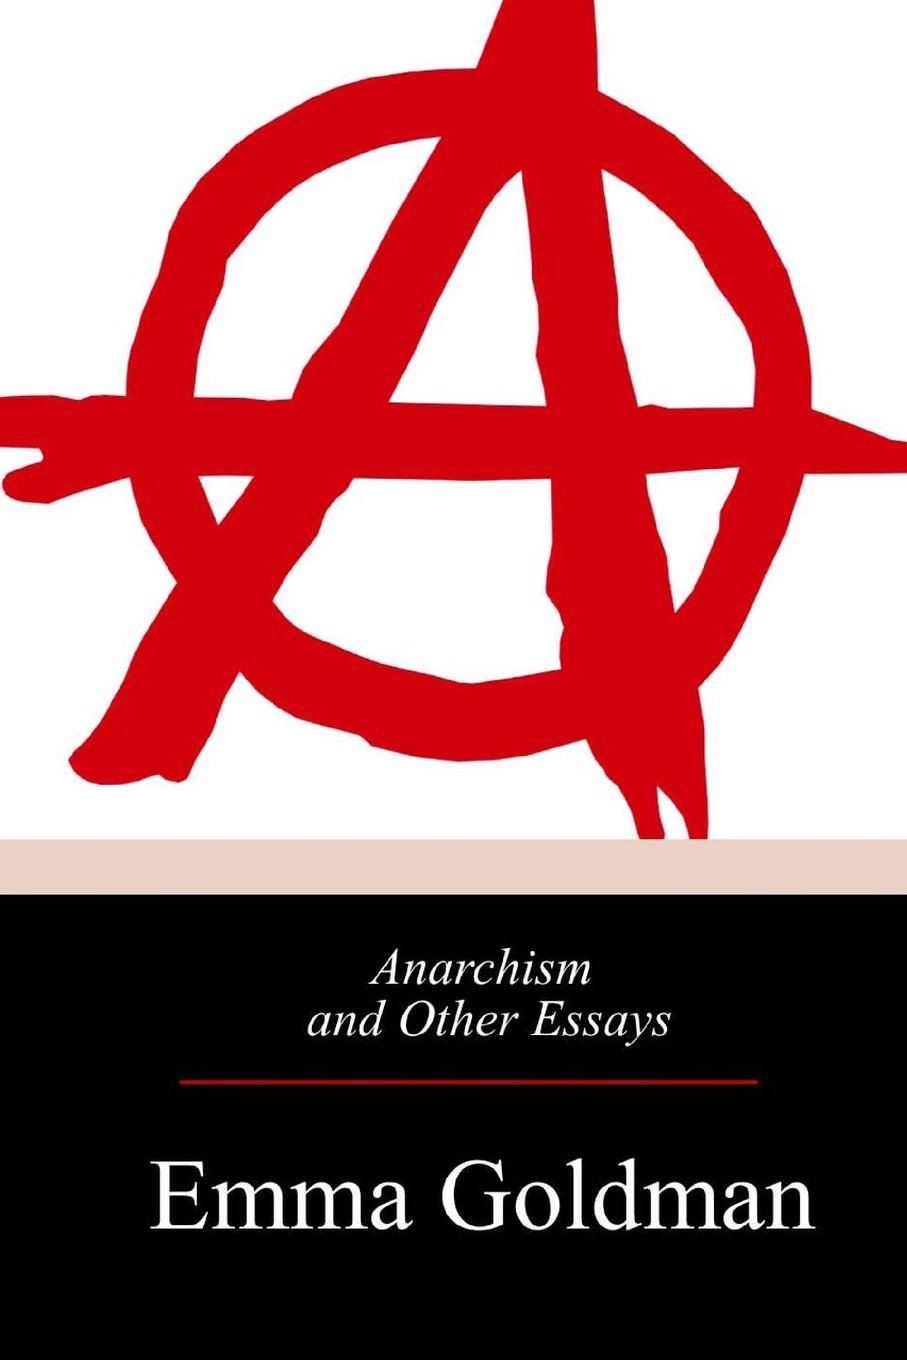 008 610zkhxxiil Essay Example Anarchism And Other Incredible Essays Emma Goldman Summary Pdf Full